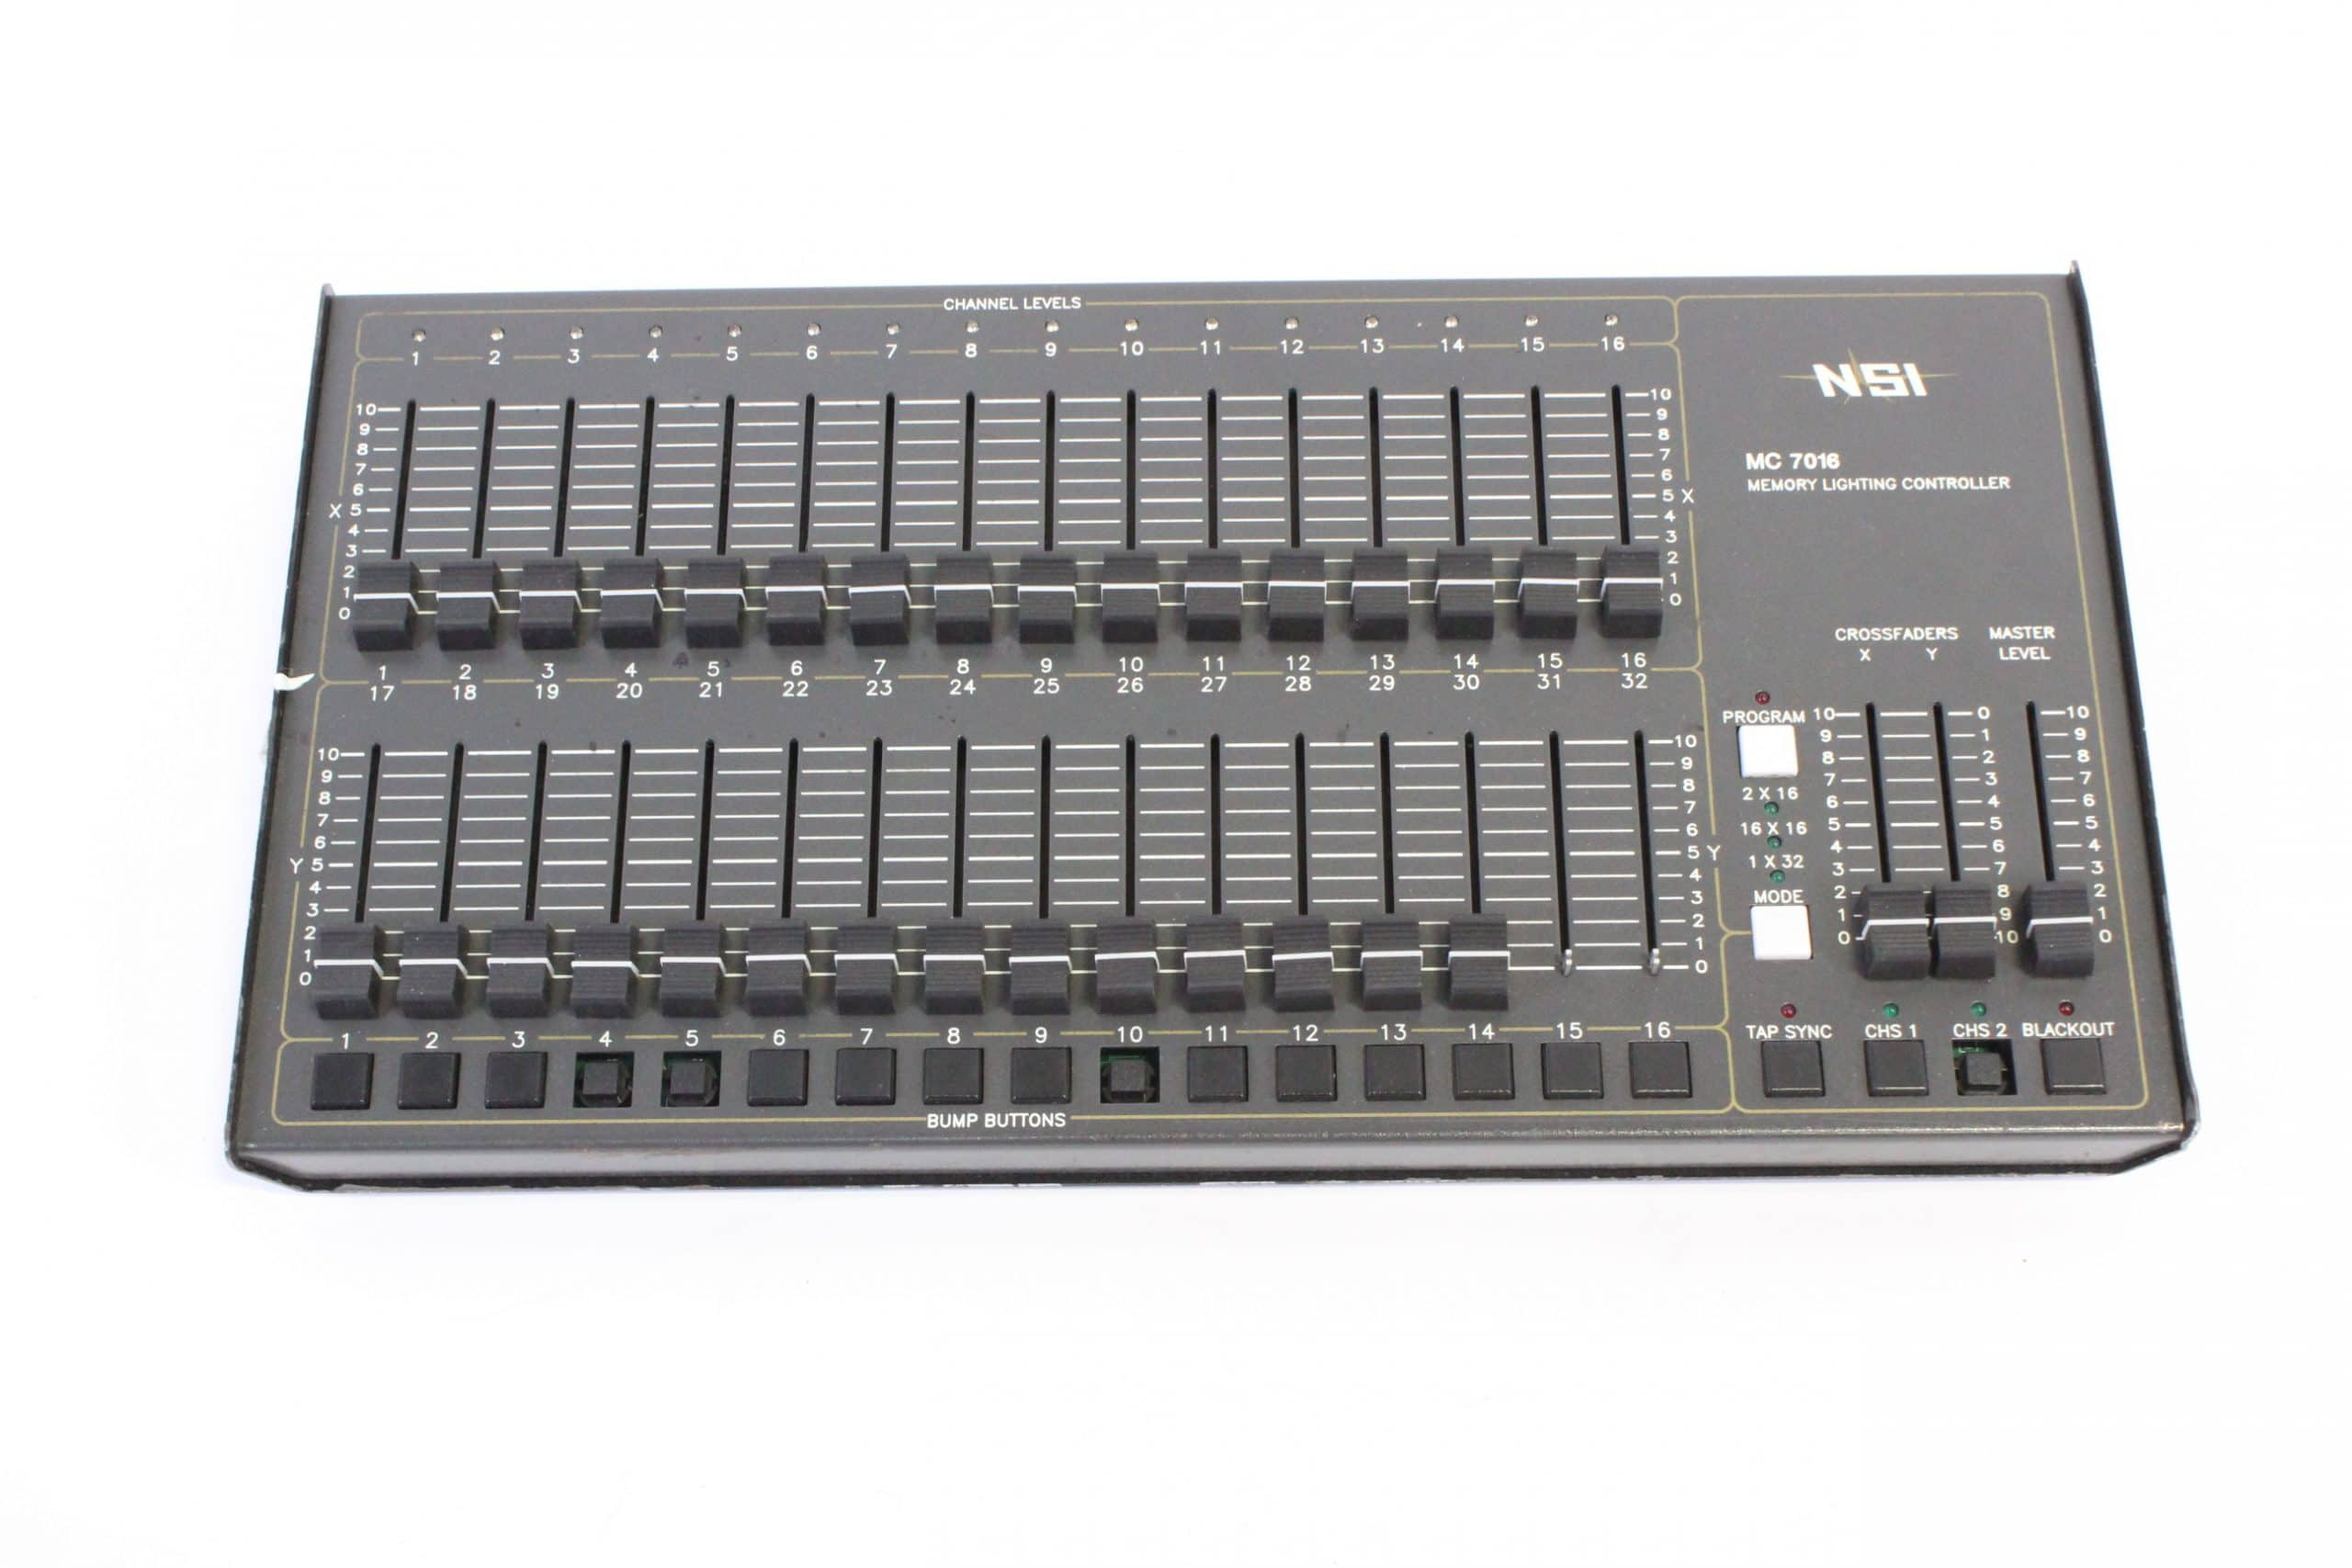 nsi-mc-1616-memory-lighting-controller-missing-4-button-caps-w-hard-case FRONT